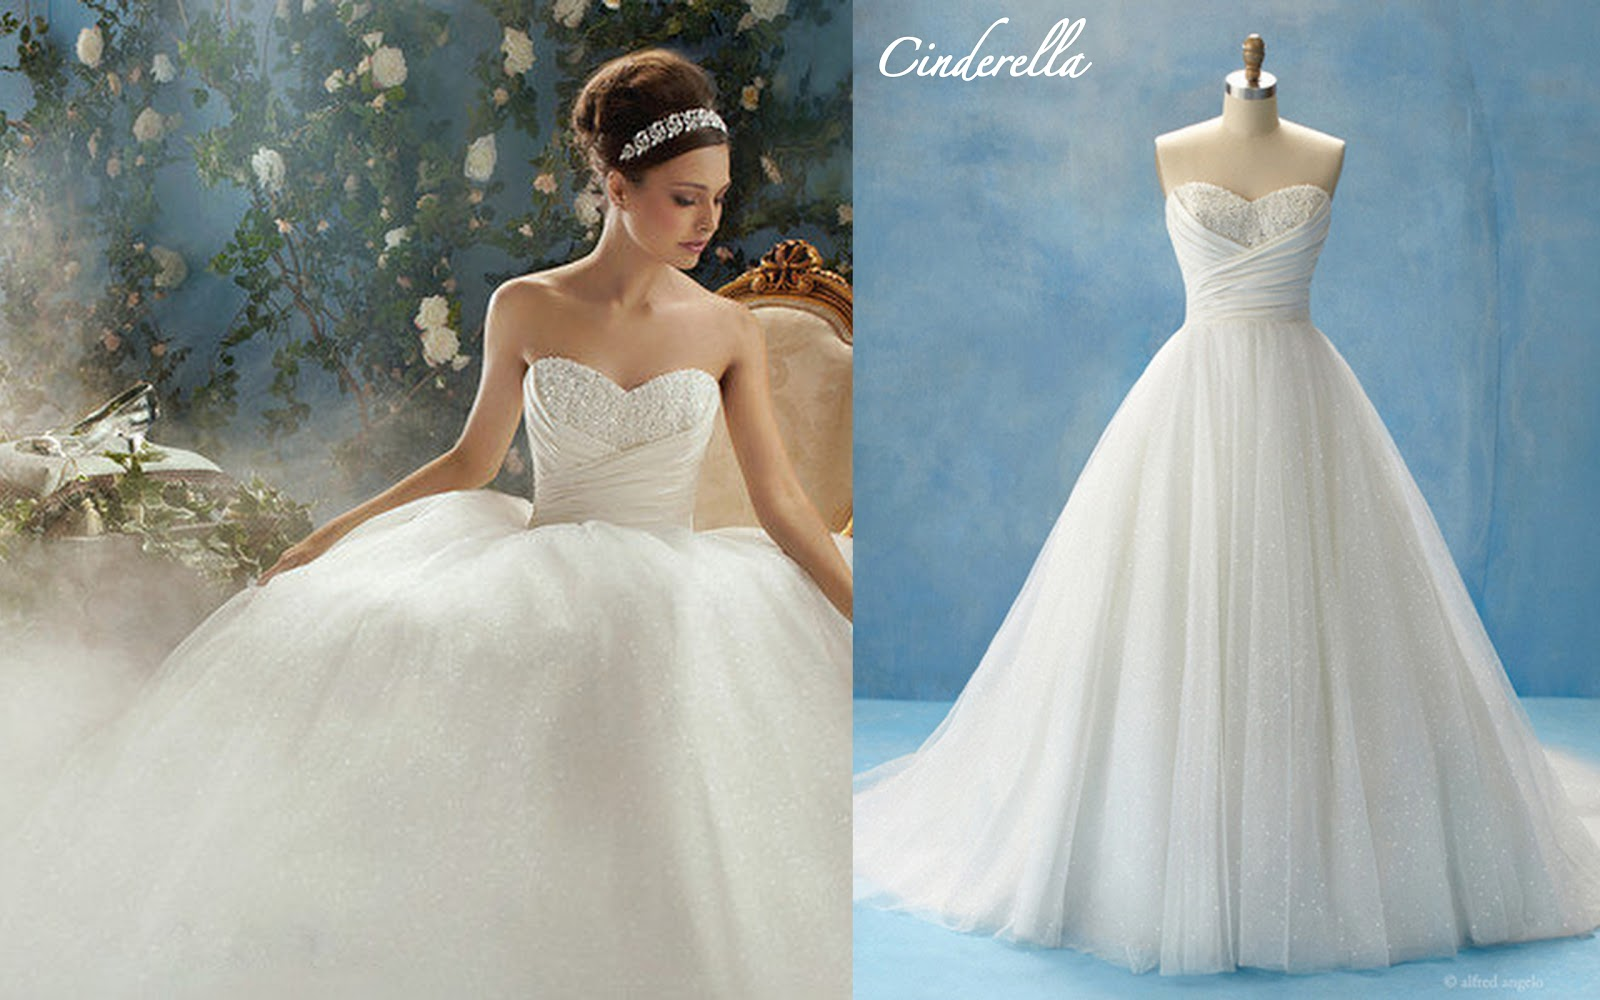 Frills and thrills fairy tale wedding gowns by alfred angelo for Fairytale inspired wedding dresses